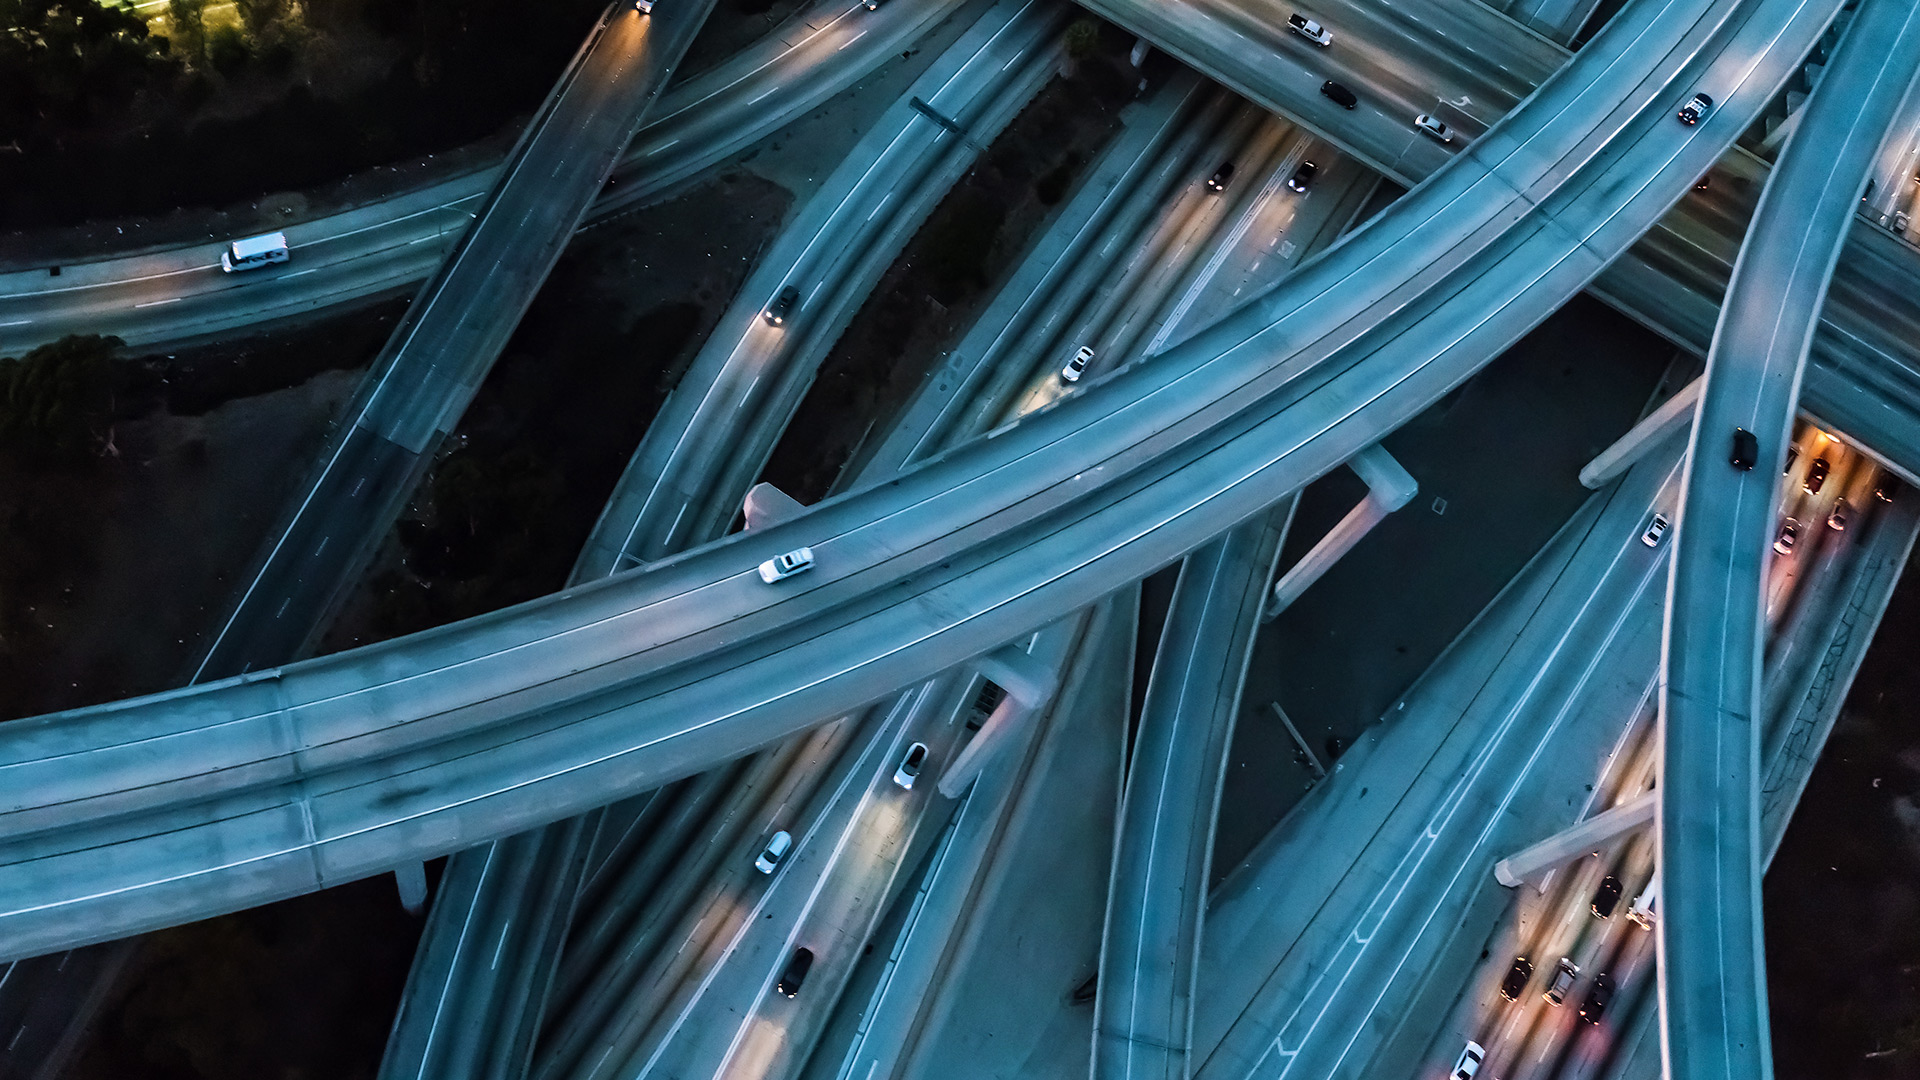 Aerial view of a massive highway at night